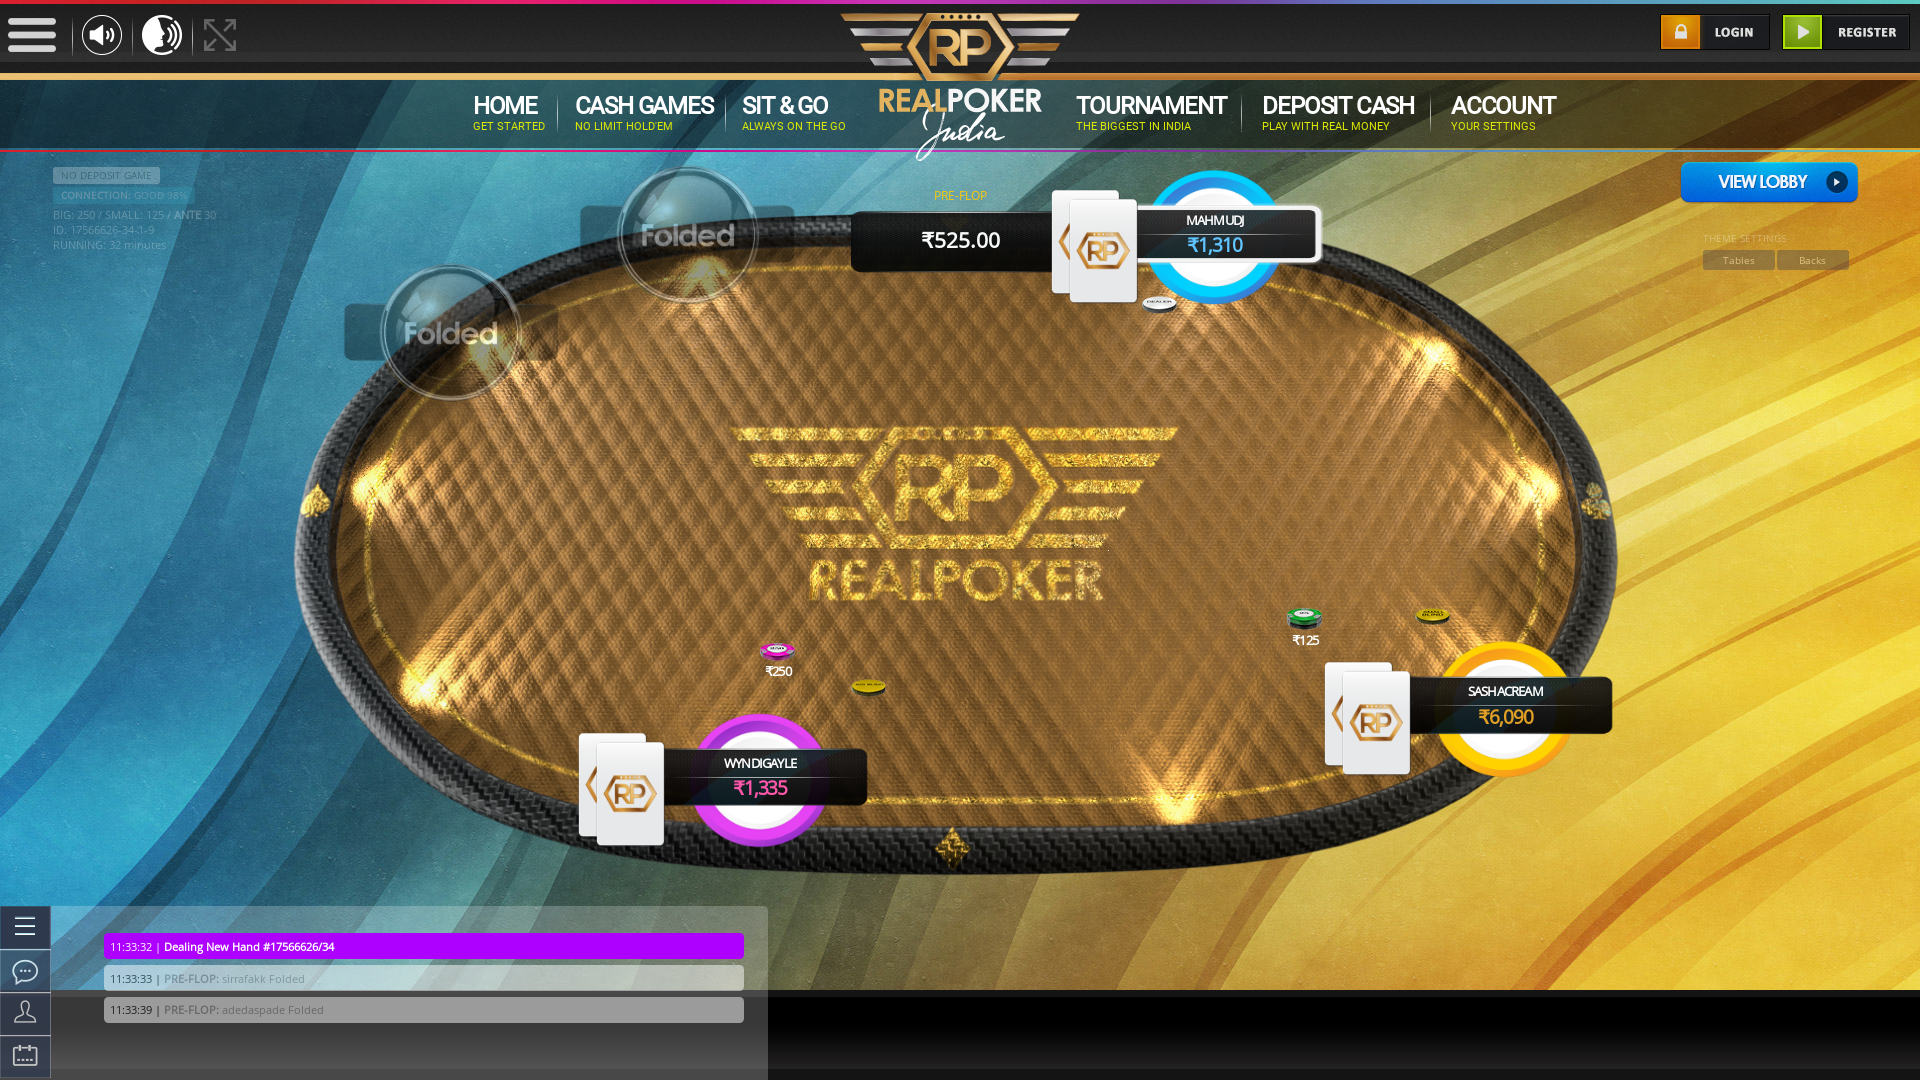 indian online poker on a 10 player table in the 32nd minute match up